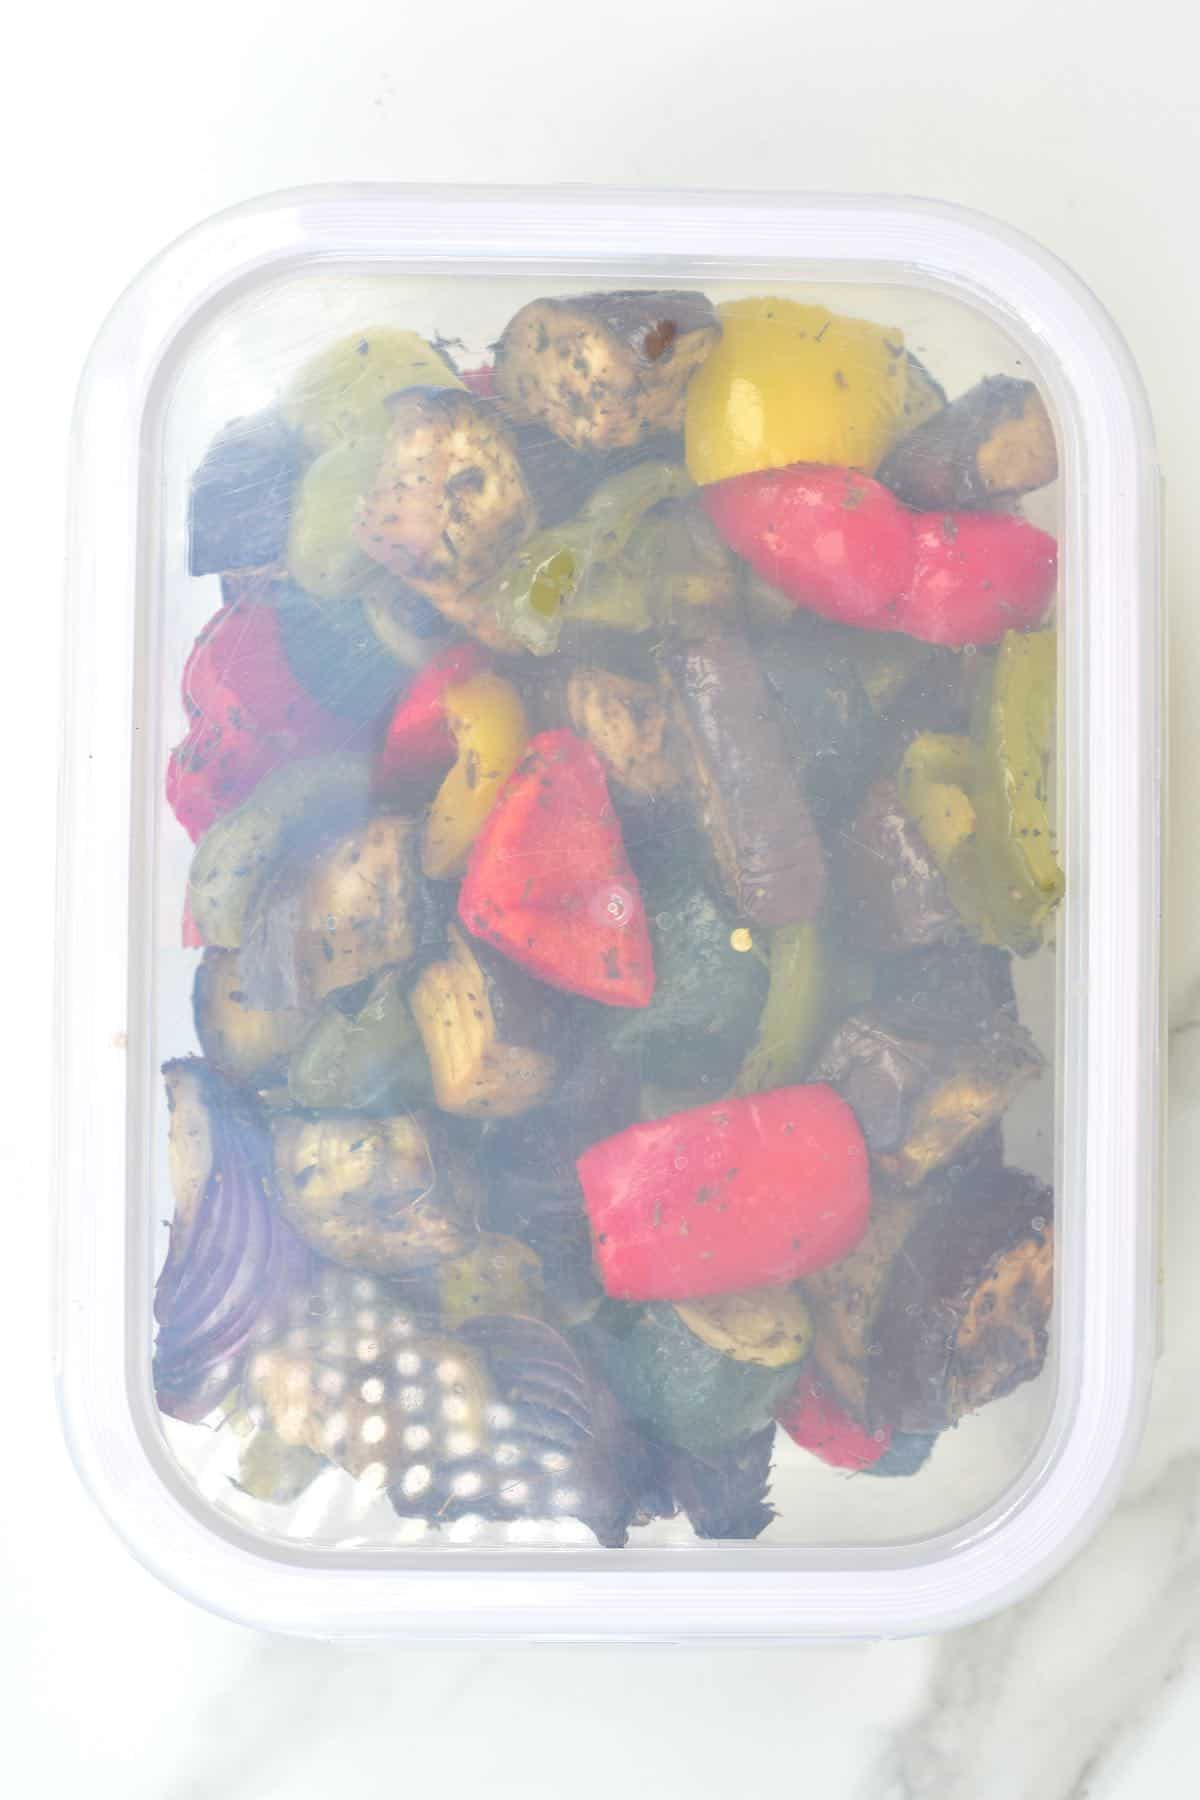 Roasted veggies in a container